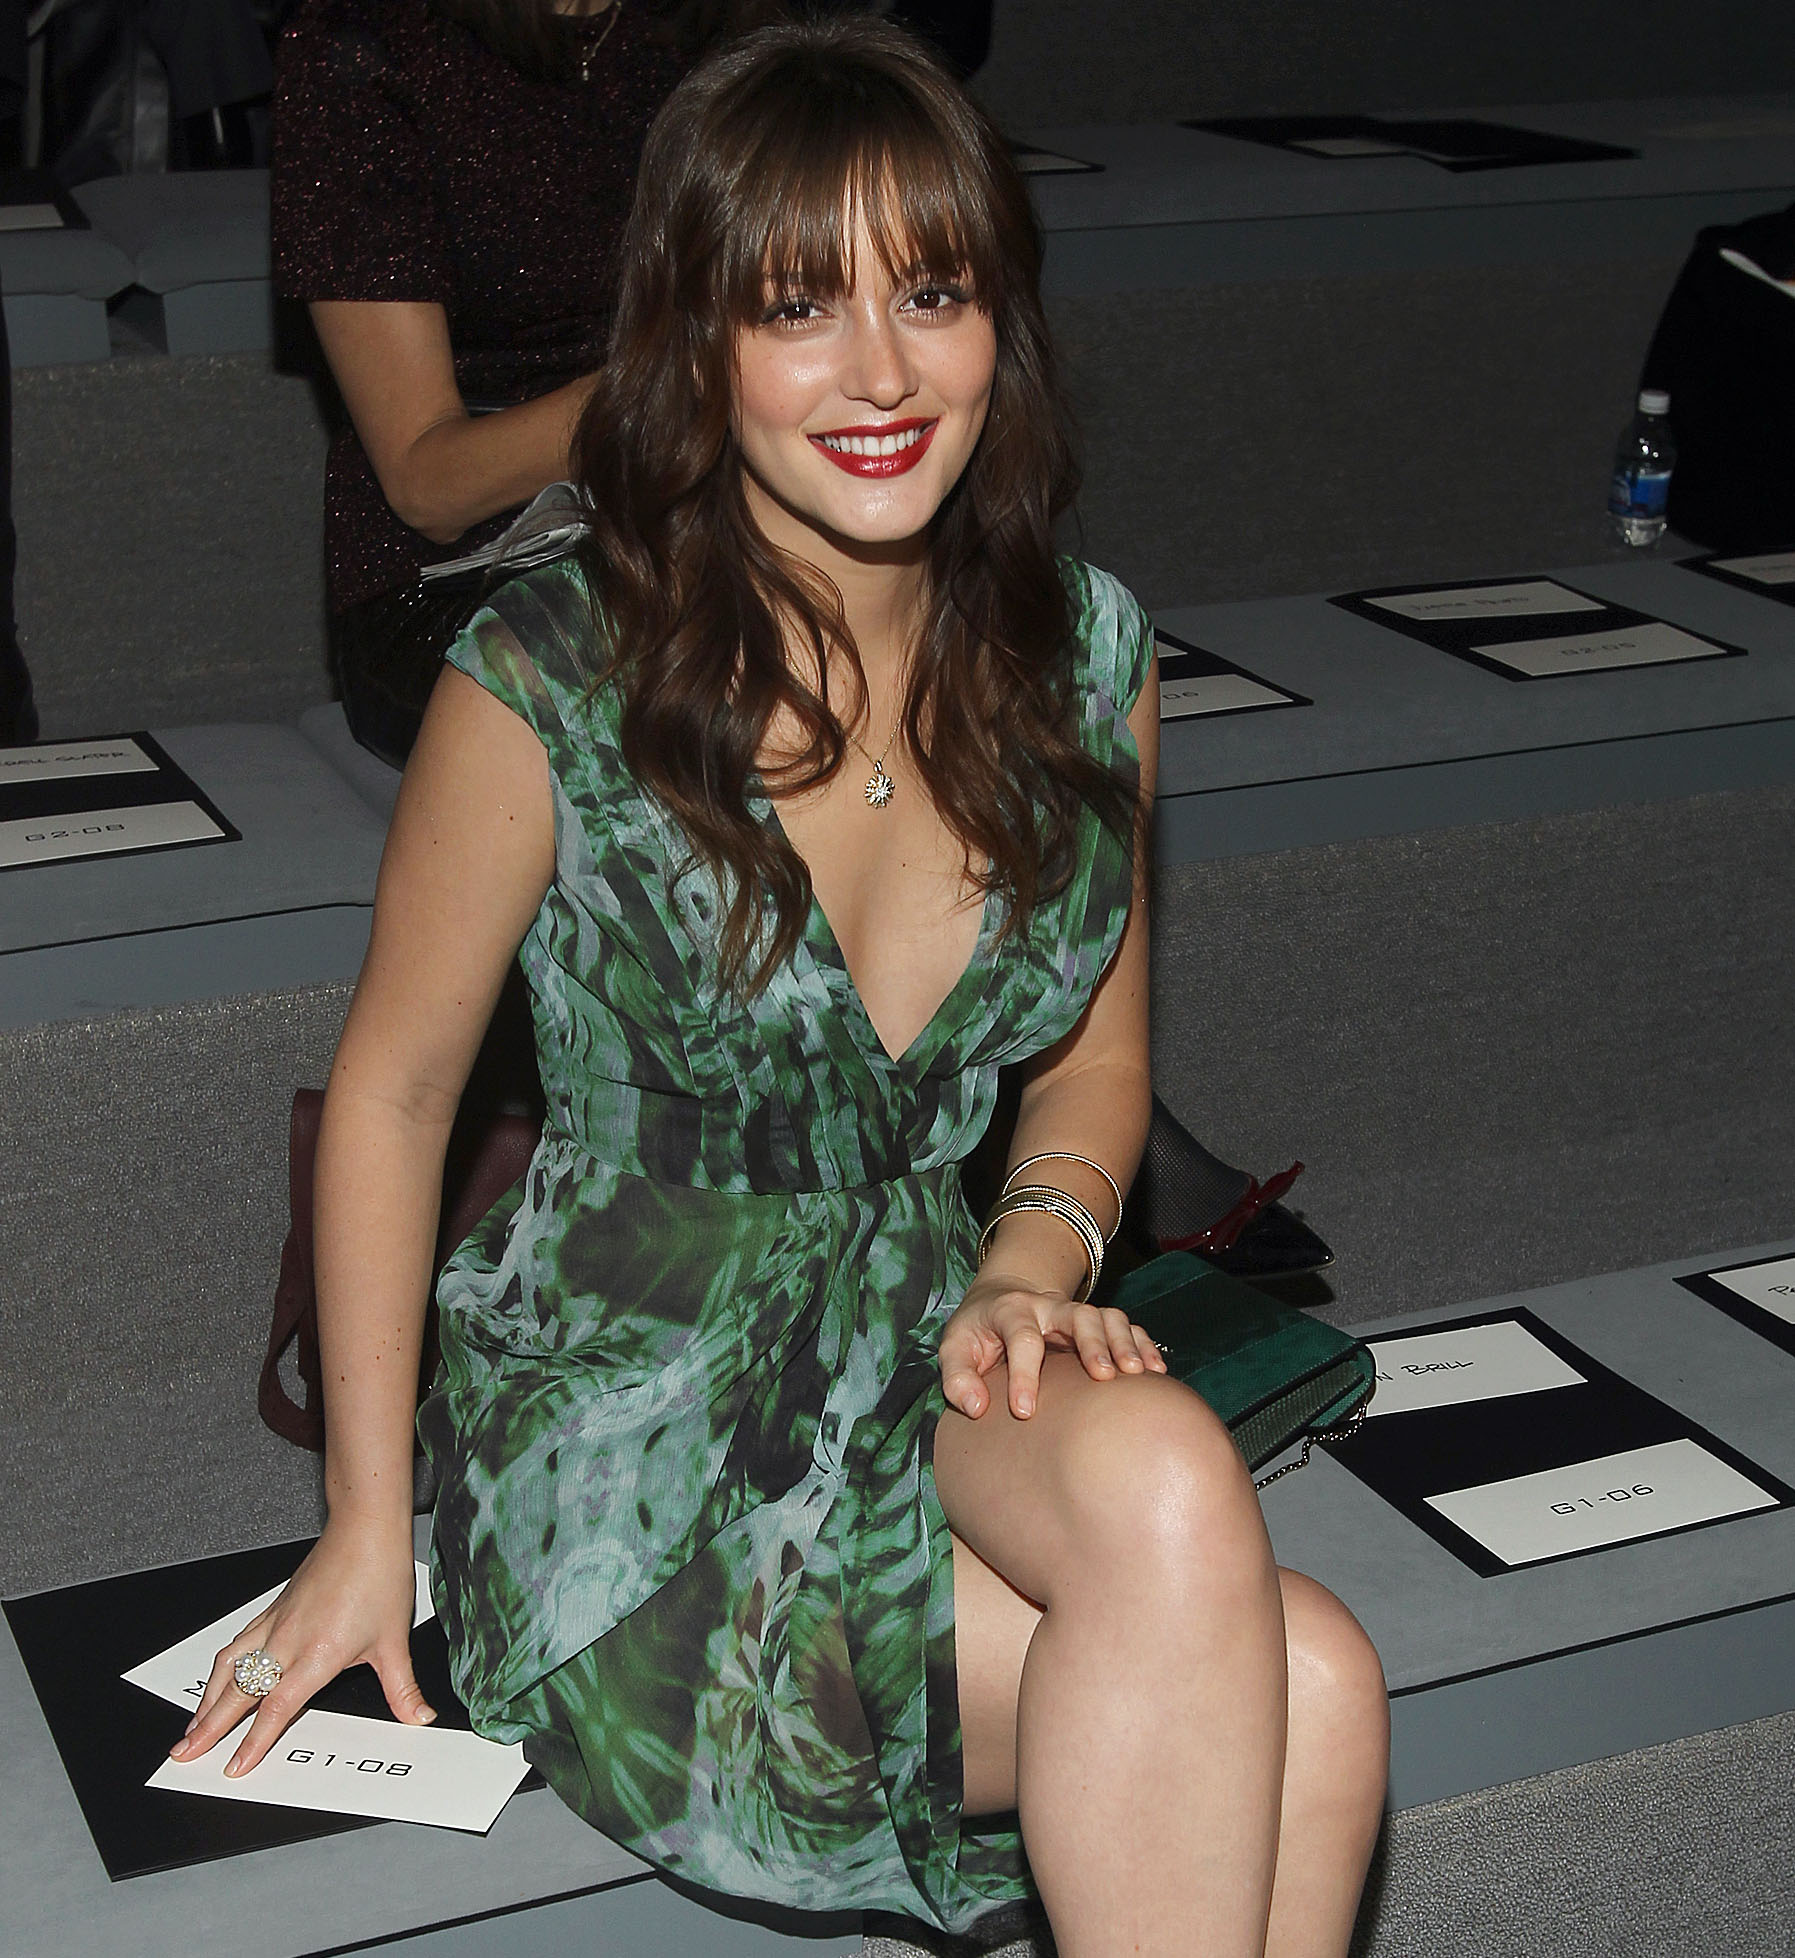 Leighton Meester, Leighton Meester photos, hot celebrity women